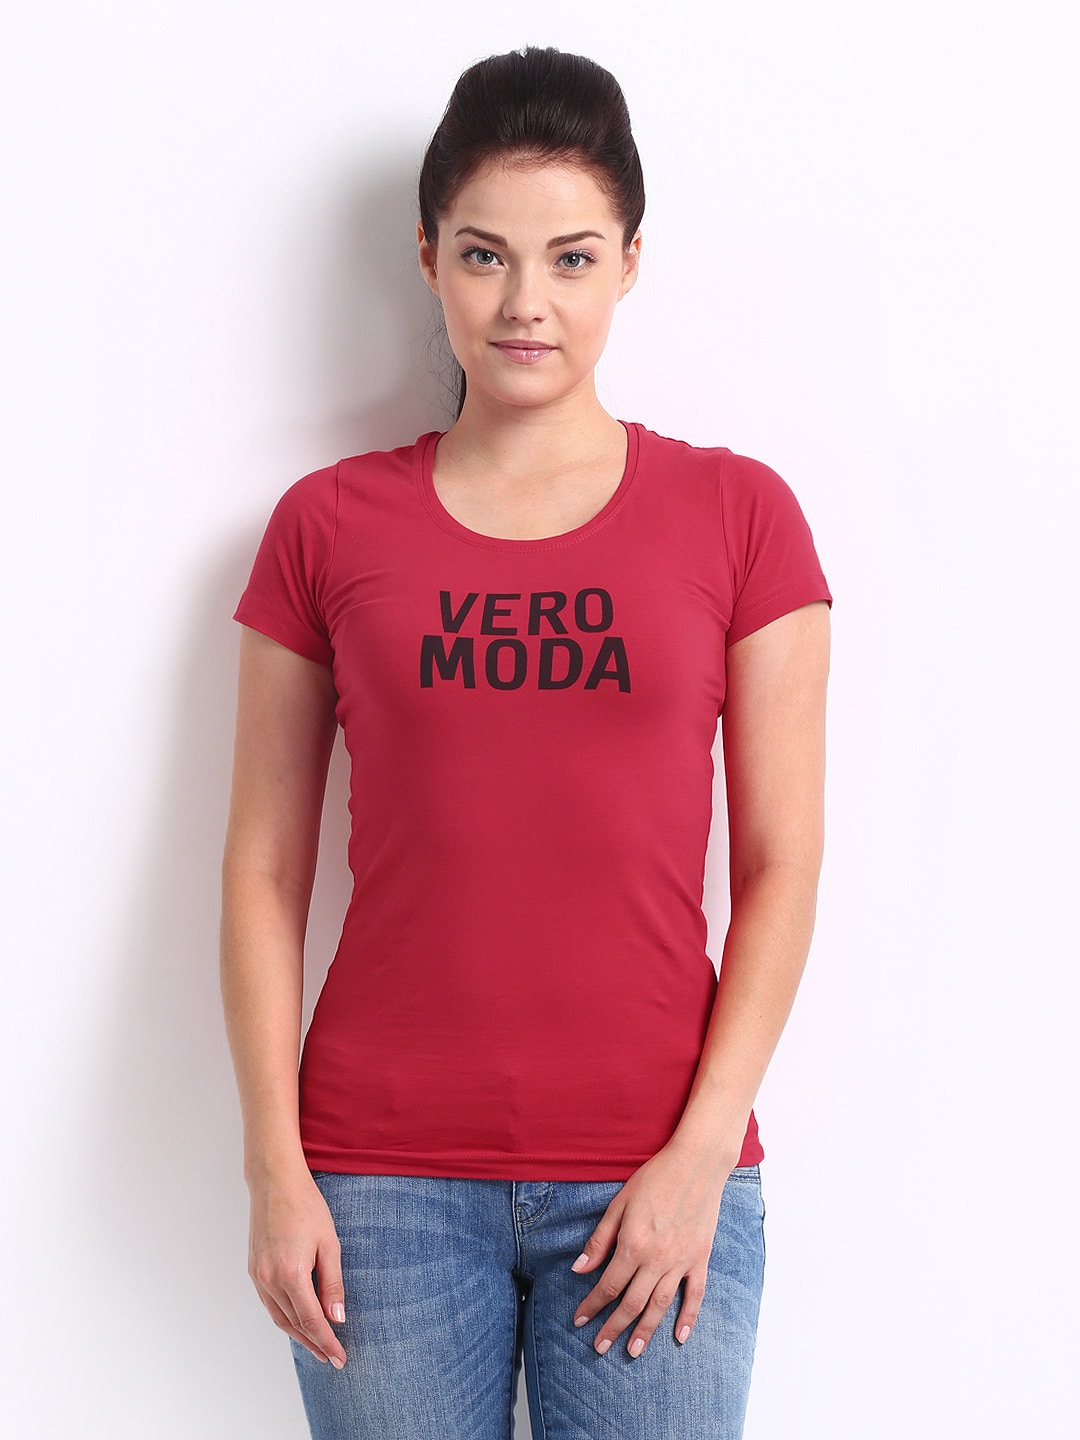 Red Shirt For Women